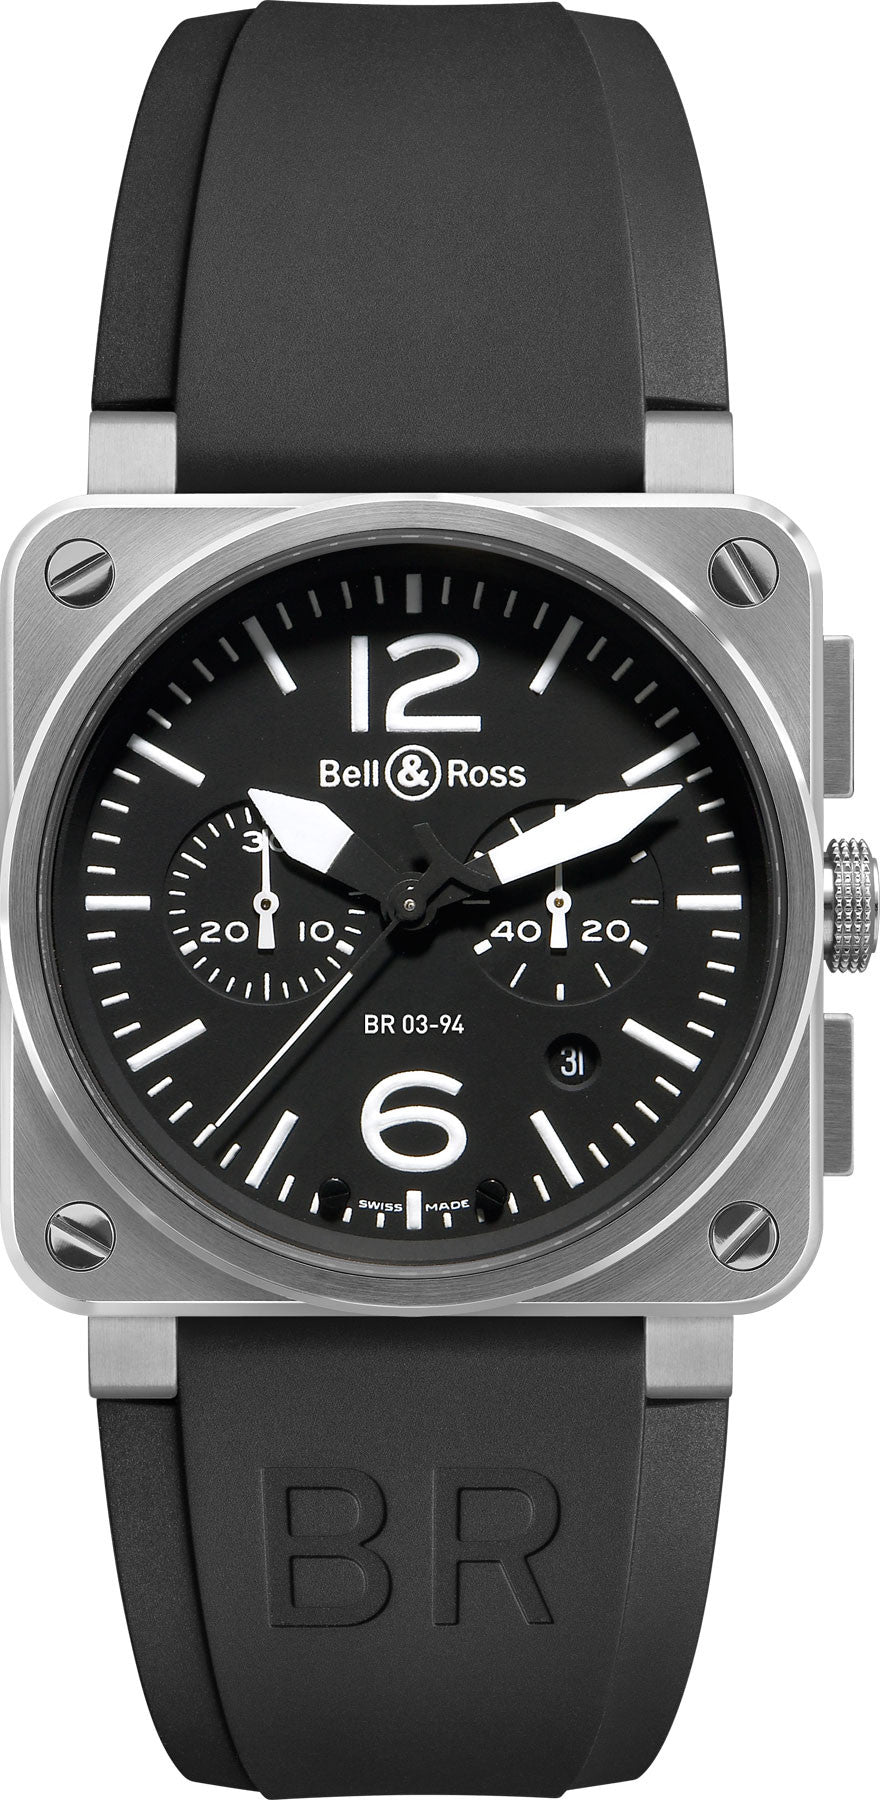 Bell & Ross Watch BR 03 94 Chronograph Black Dial Steel Case